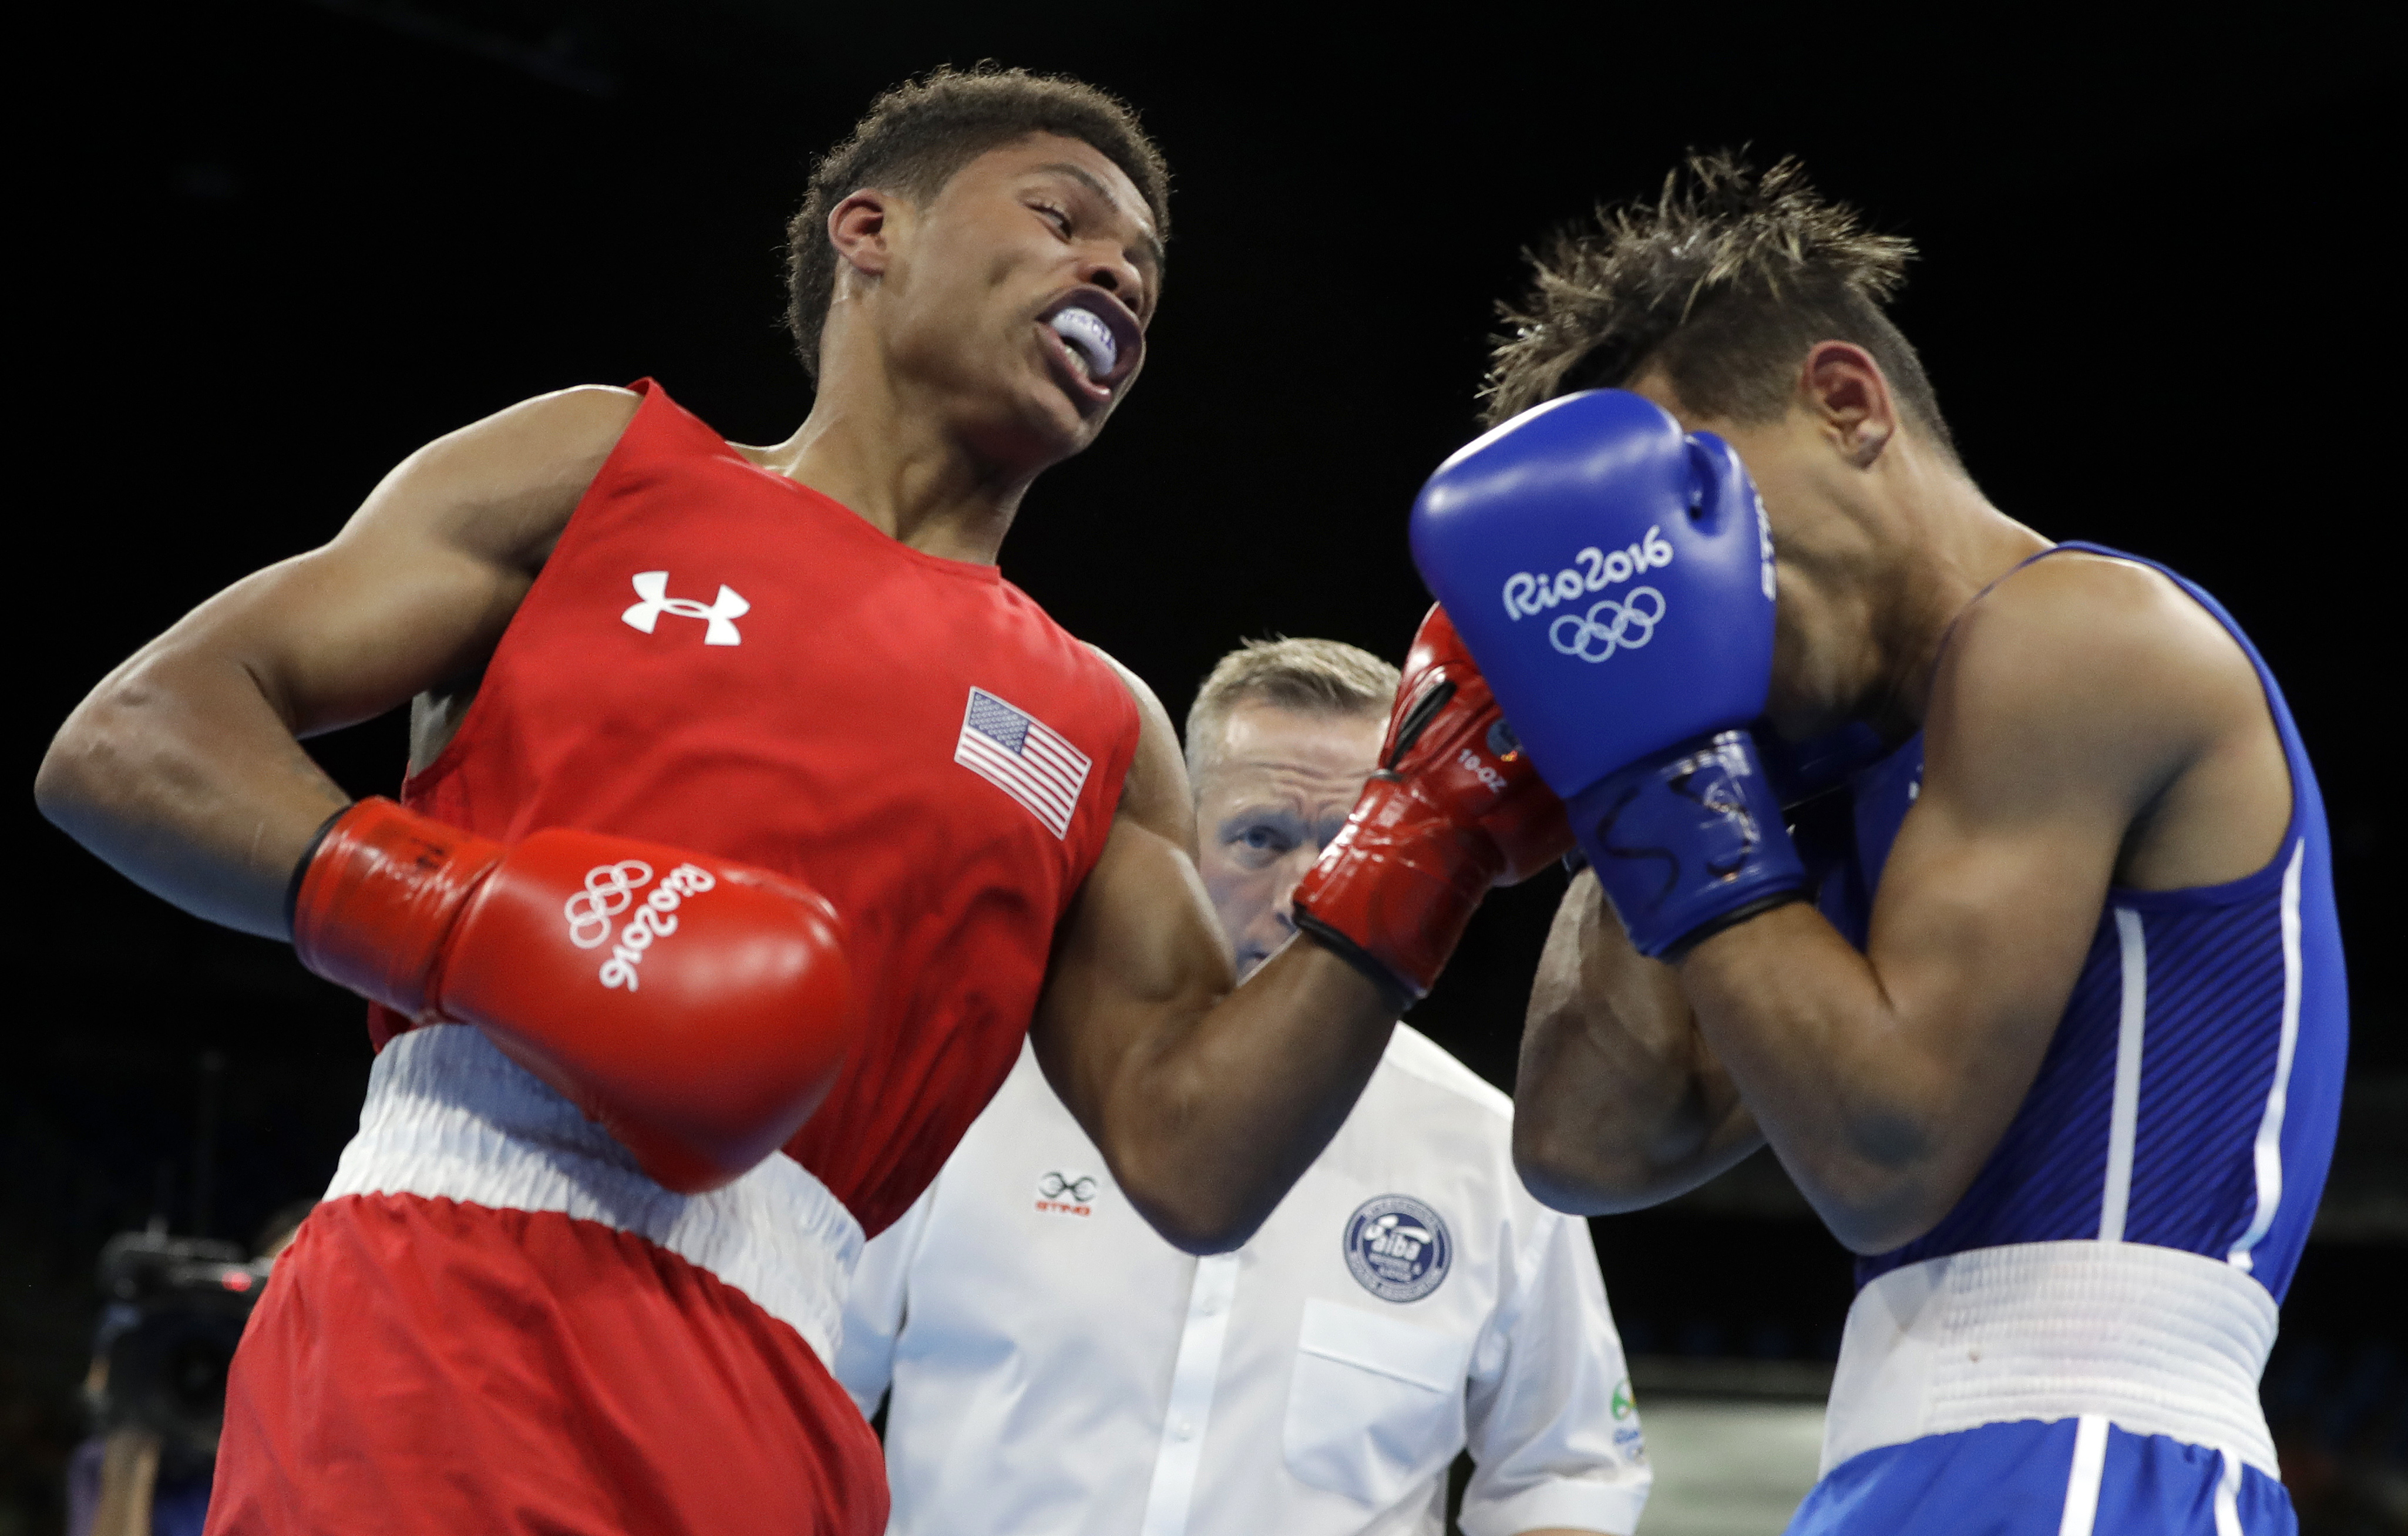 FILE - In this Aug. 20, 2016, file photo, United States' Shakur Stevenson, left, fights Cuba's Robeisy Ramirez during a men's bantamweight 56-kg final boxing match at the 2016 Summer Olympics in Rio de Janeiro, Brazil. Stevenson believes he is destined fo